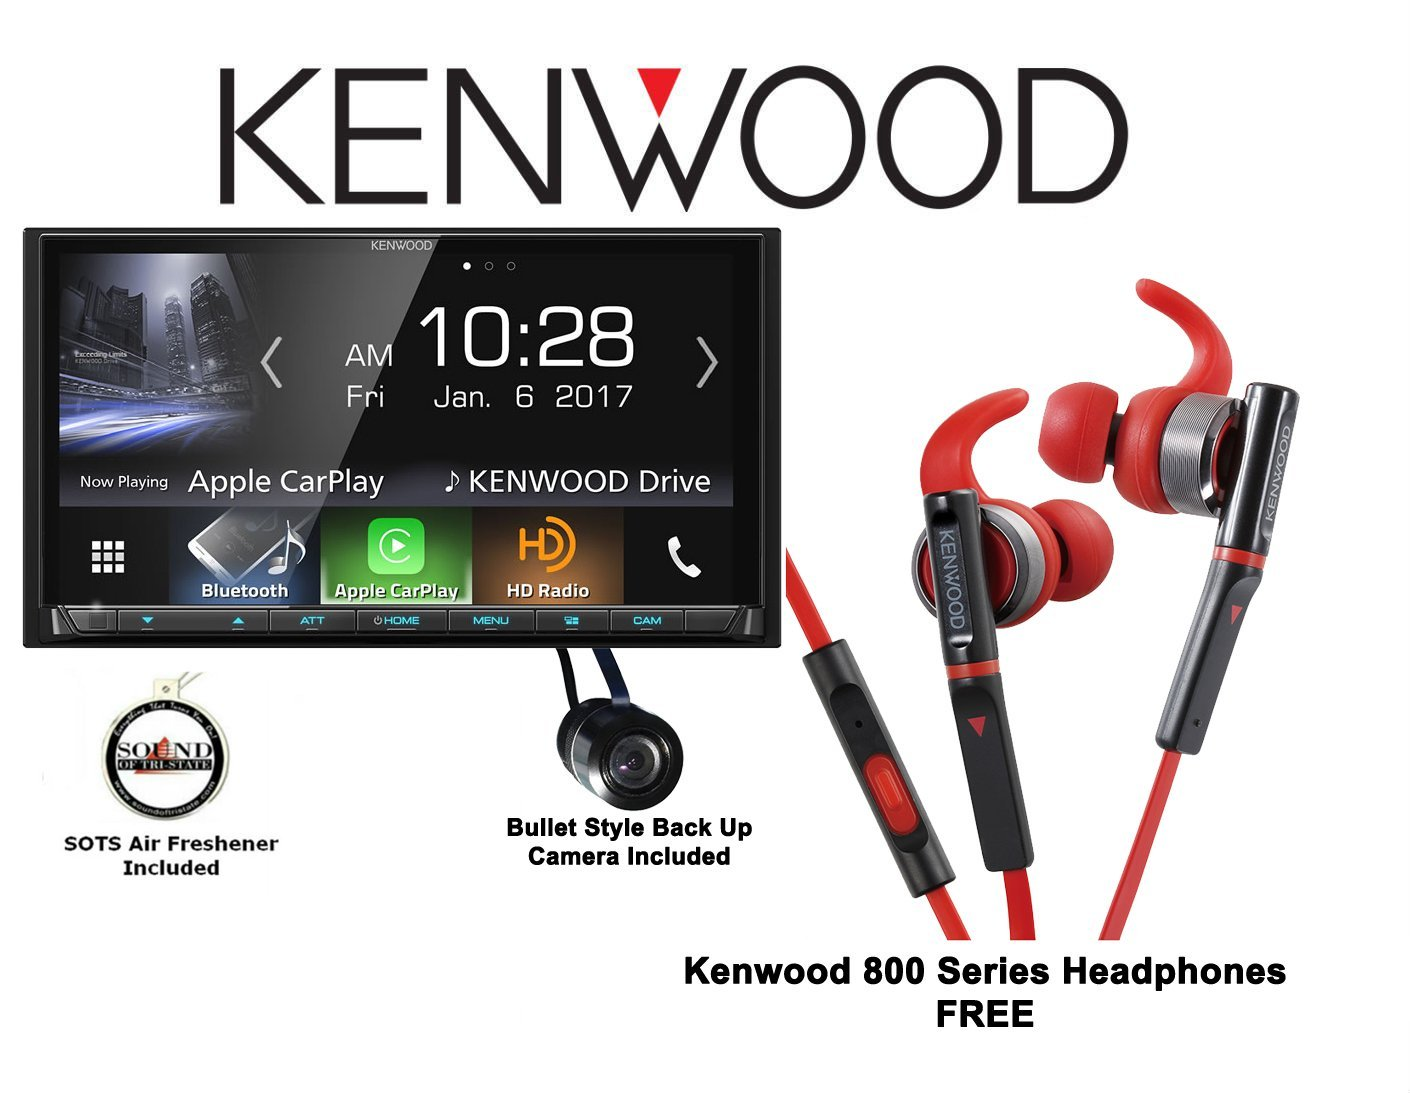 "Kenwood DMX7704S 6.95"" Digital Media Receiver with a Kenwood 800 Series In Ear Headphones and Back Up Camera with a FREE SOTS Air Freshener"